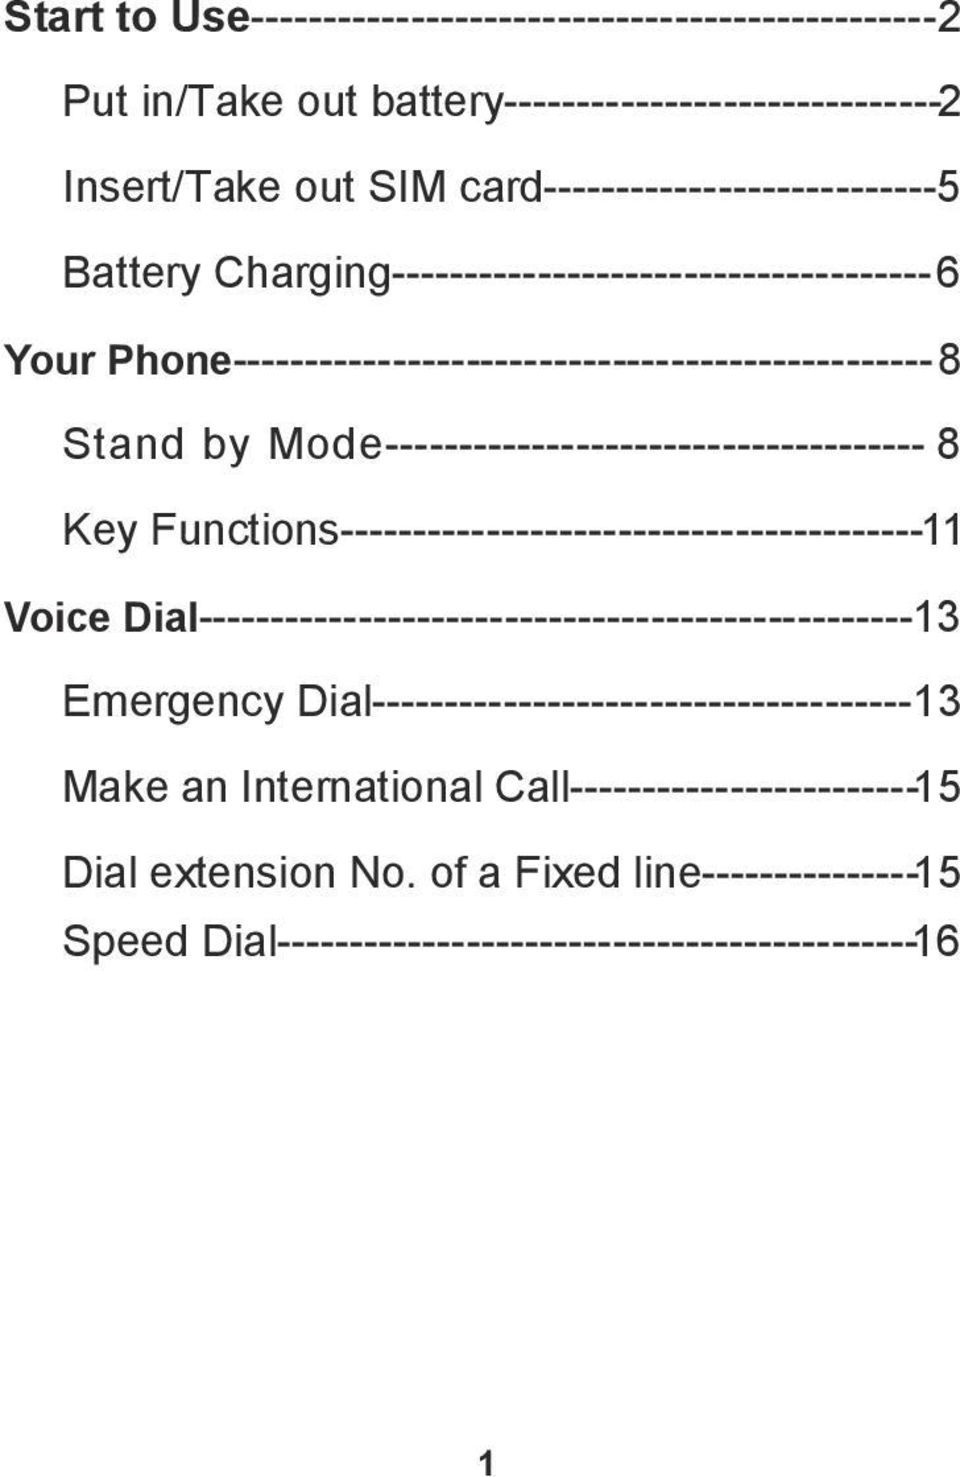 Mode------------------------------------- 8 Key Functions----------------------------------------11 Voice Dial-------------------------------------------------13